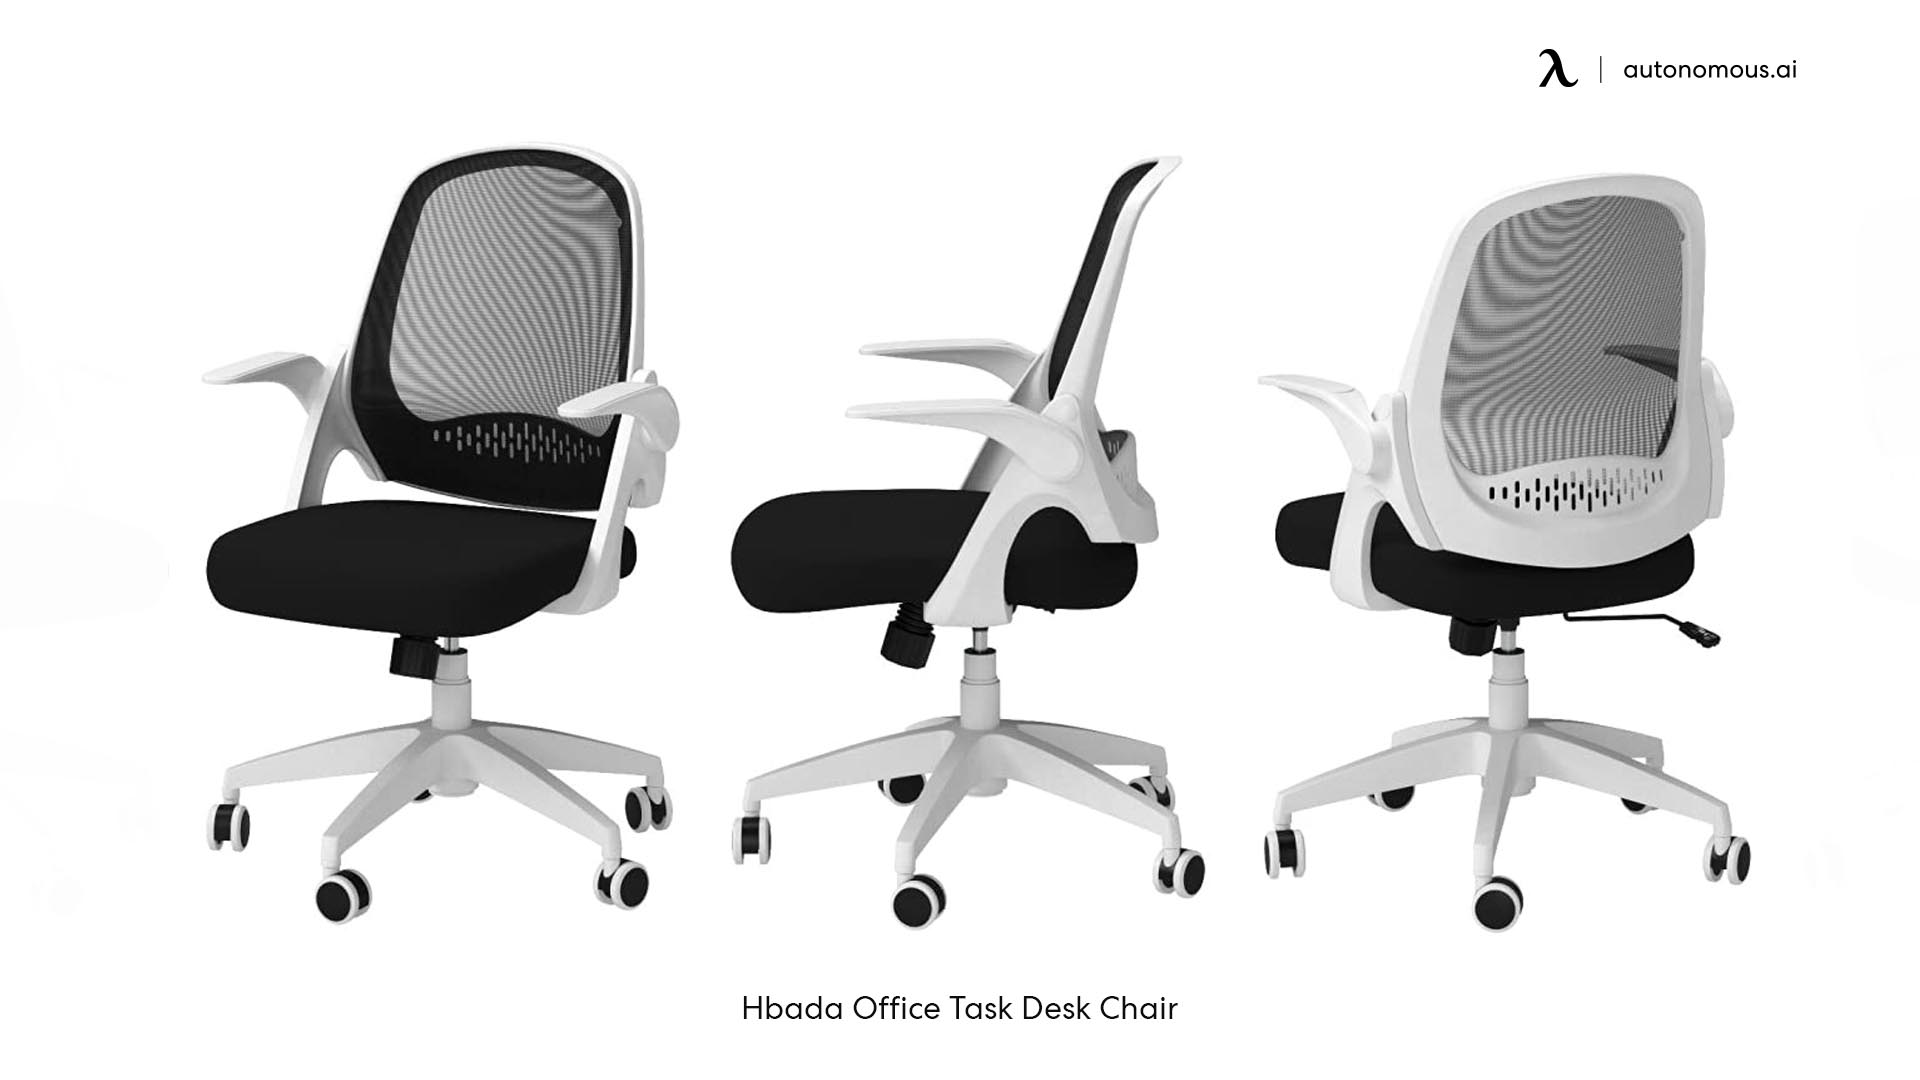 Hbada Office work from home desk and chair